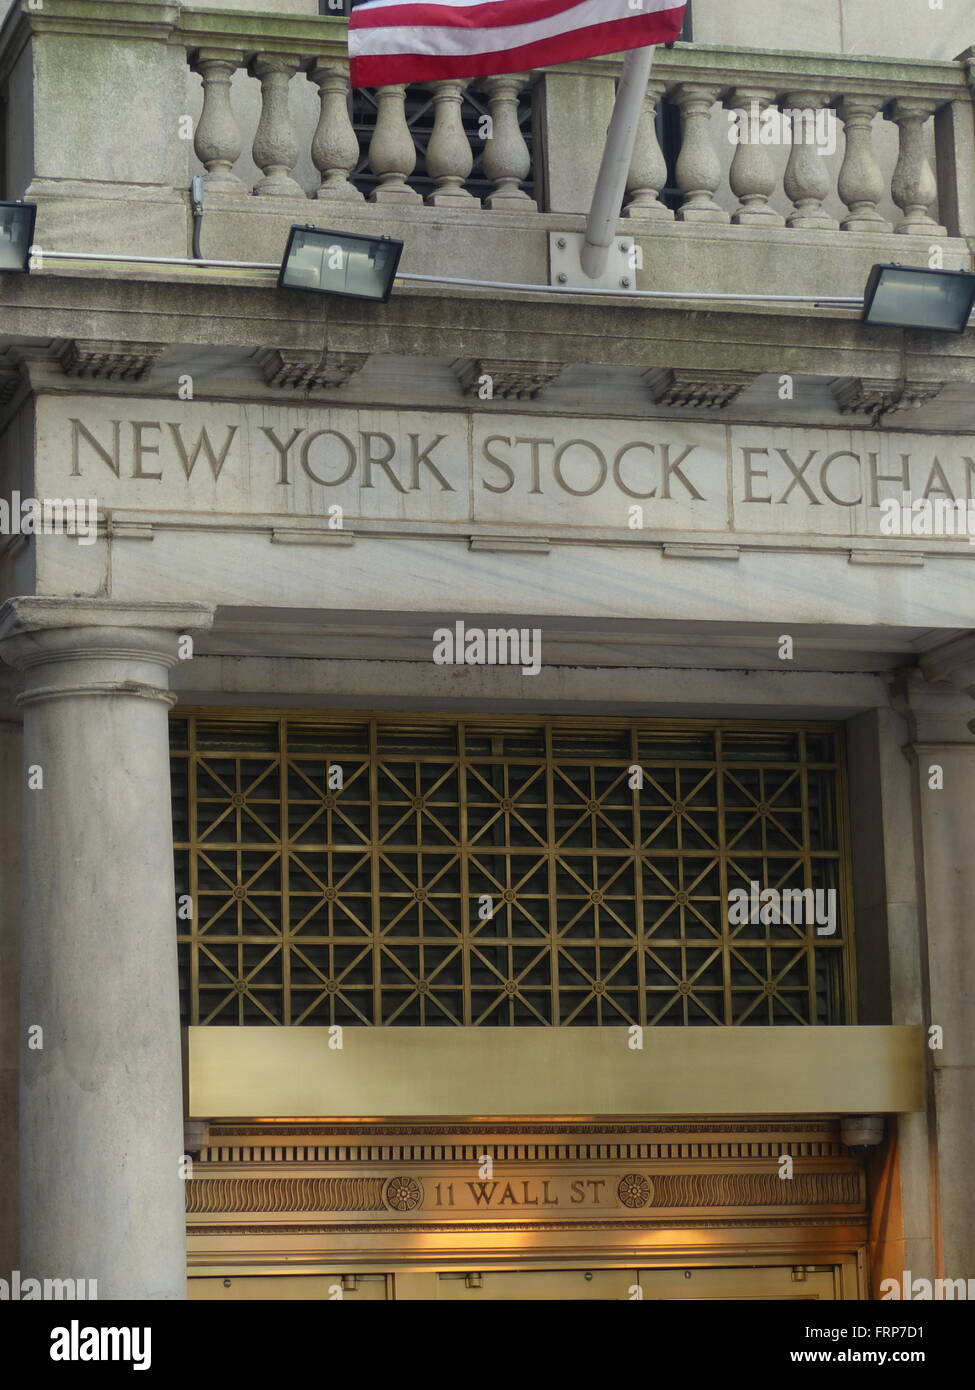 New York Stock Exchange - Stock Image